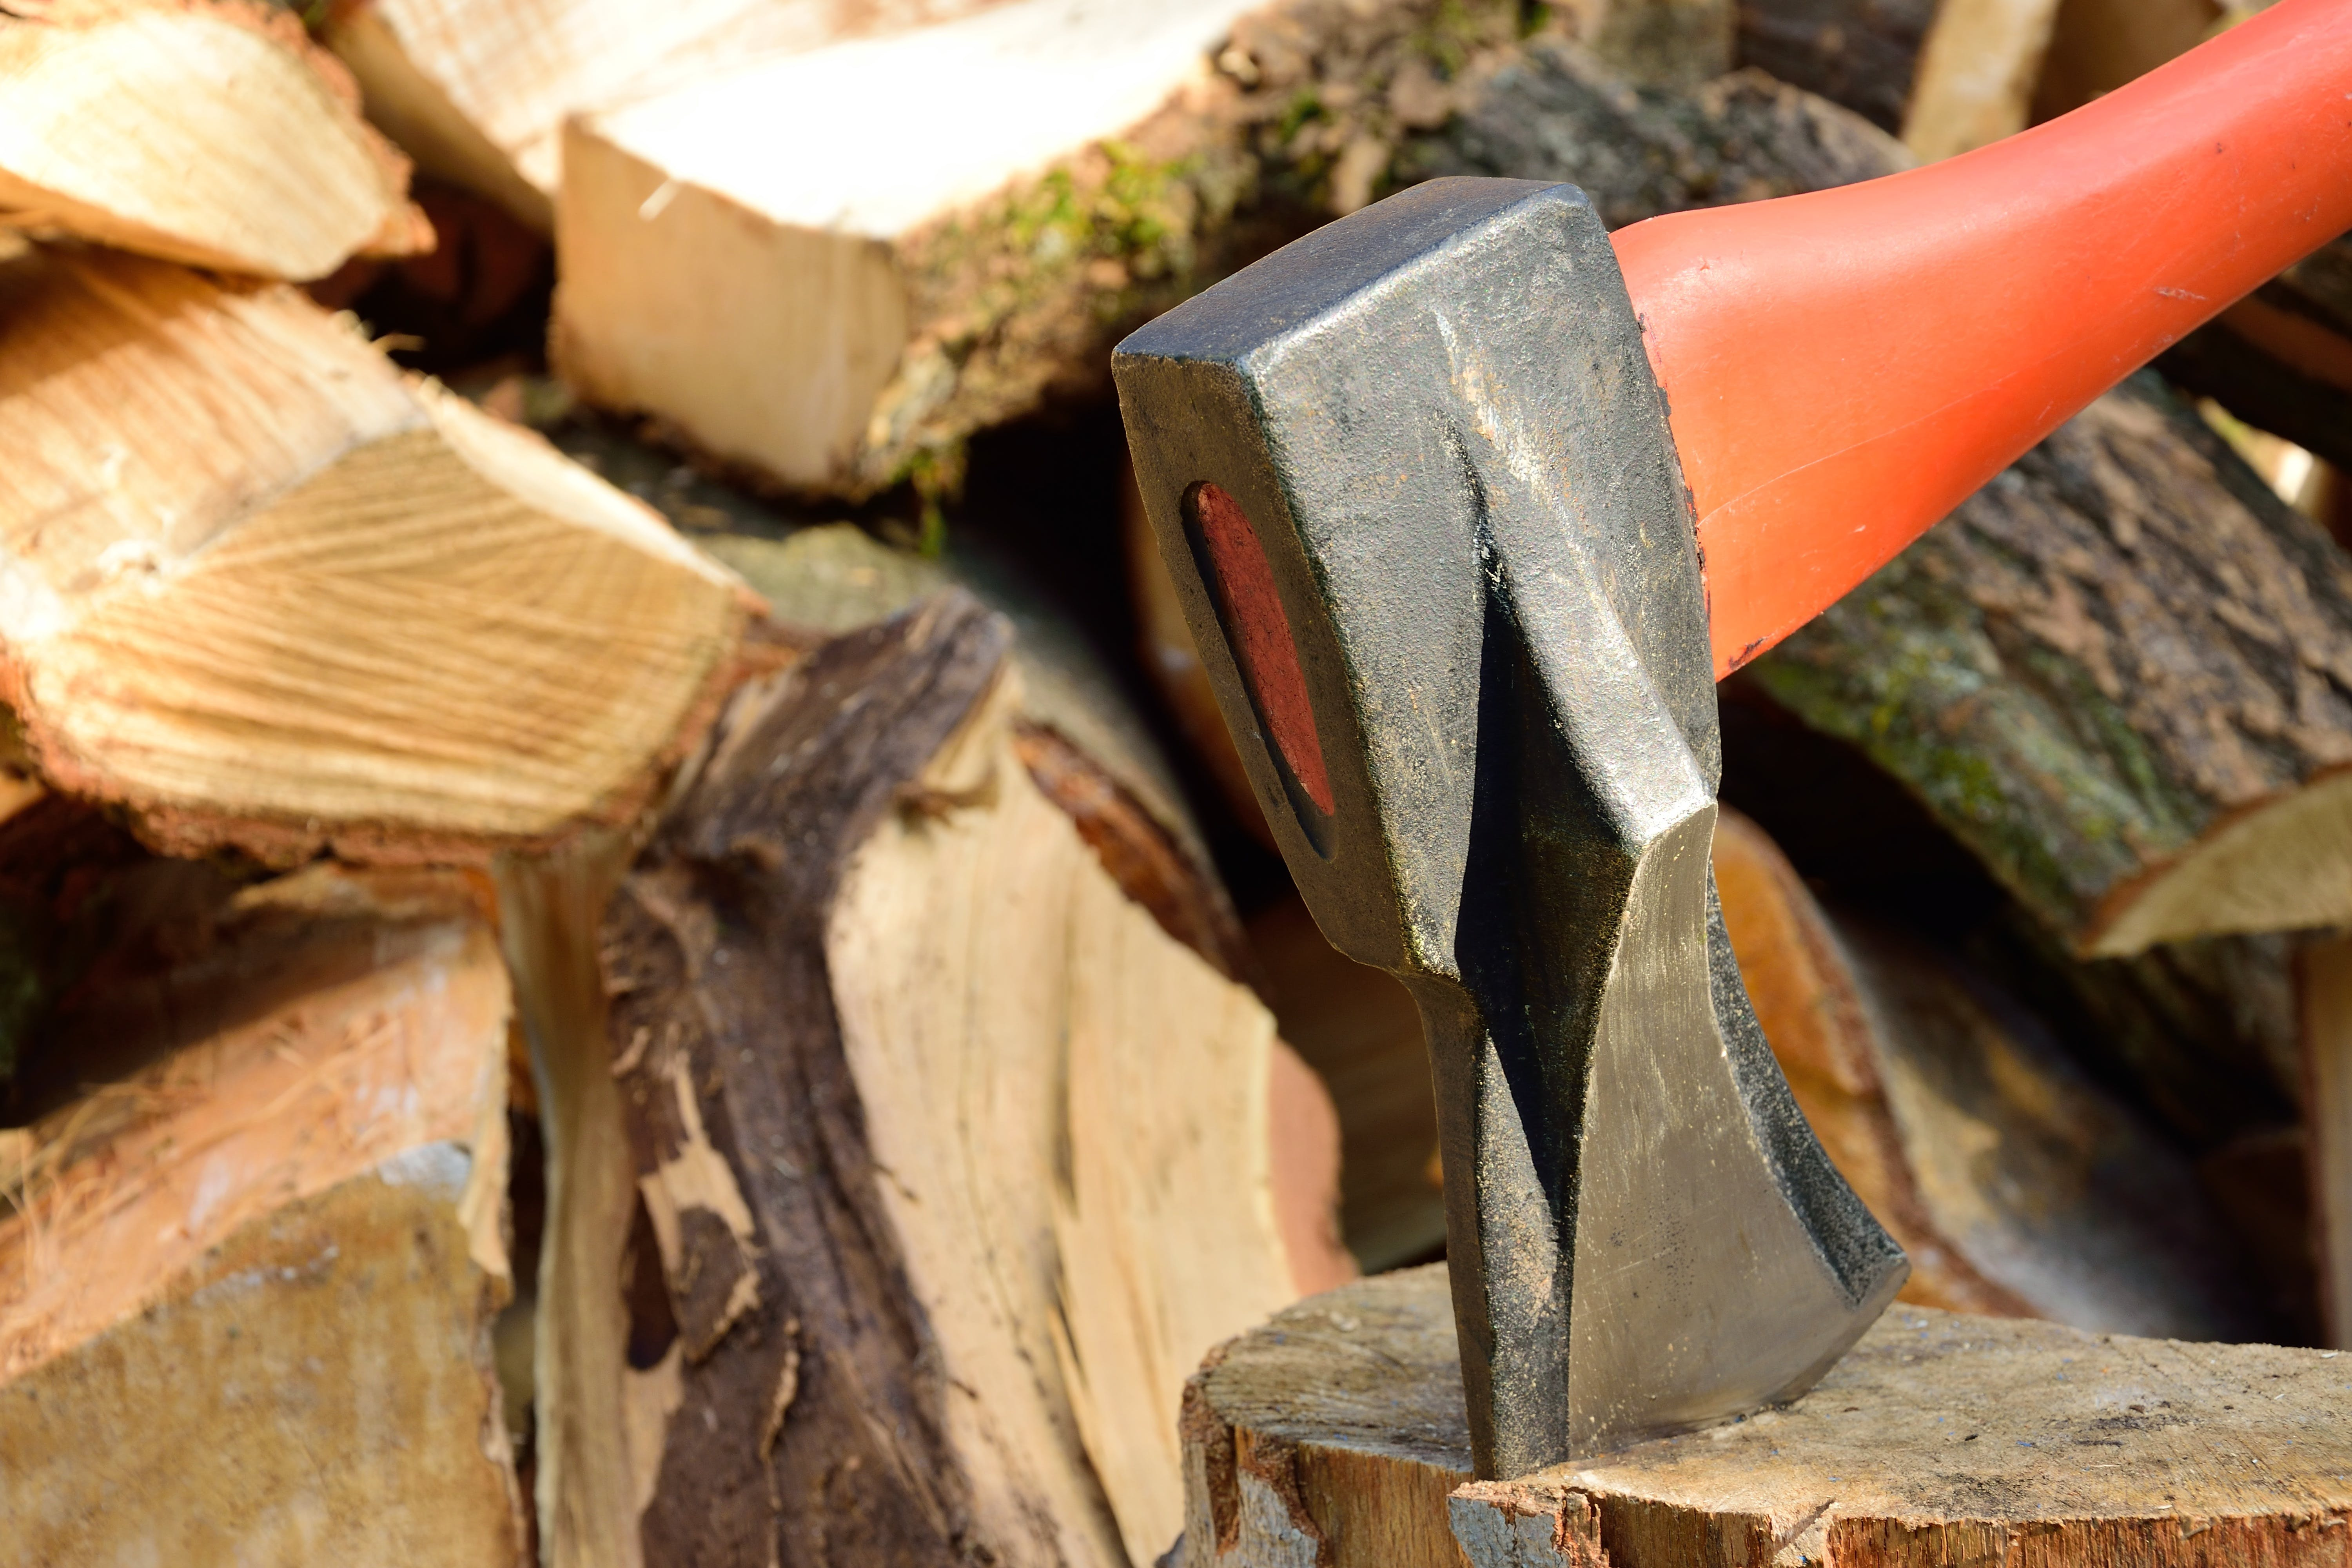 Free stock photo of ax, axe, cutting tools, firewood